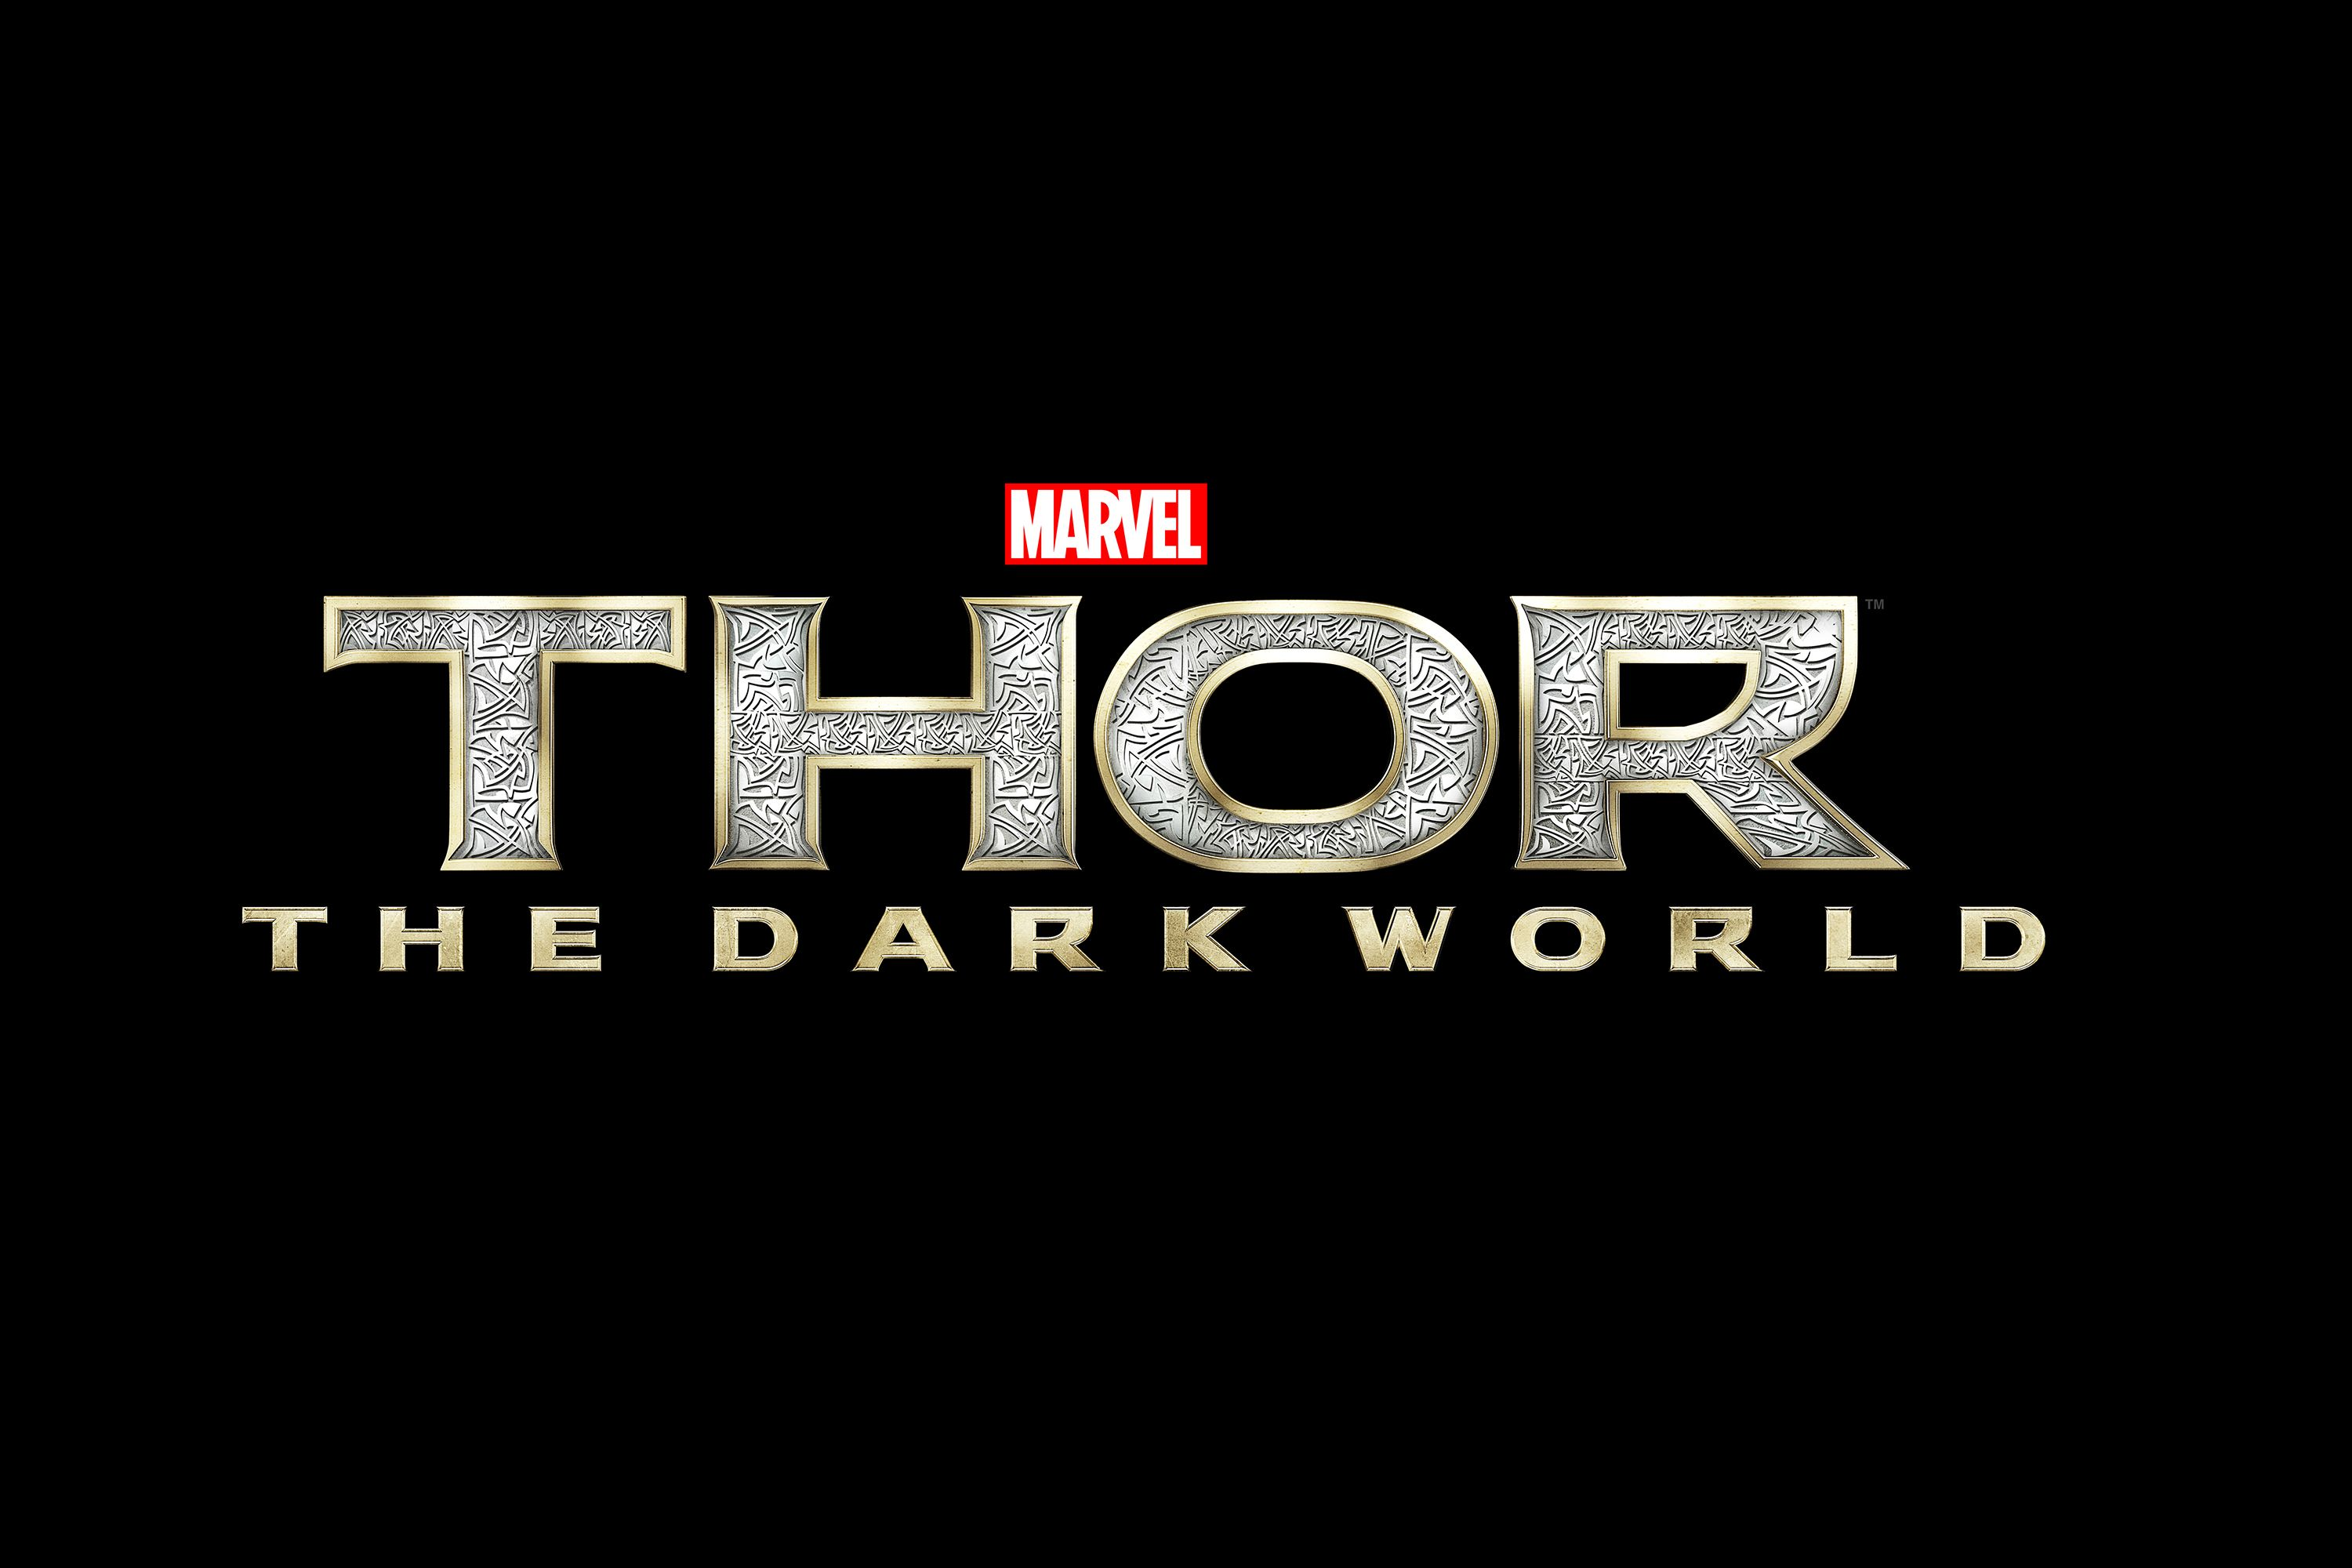 Thor logo The dark world, Thor, Comic book superheroes